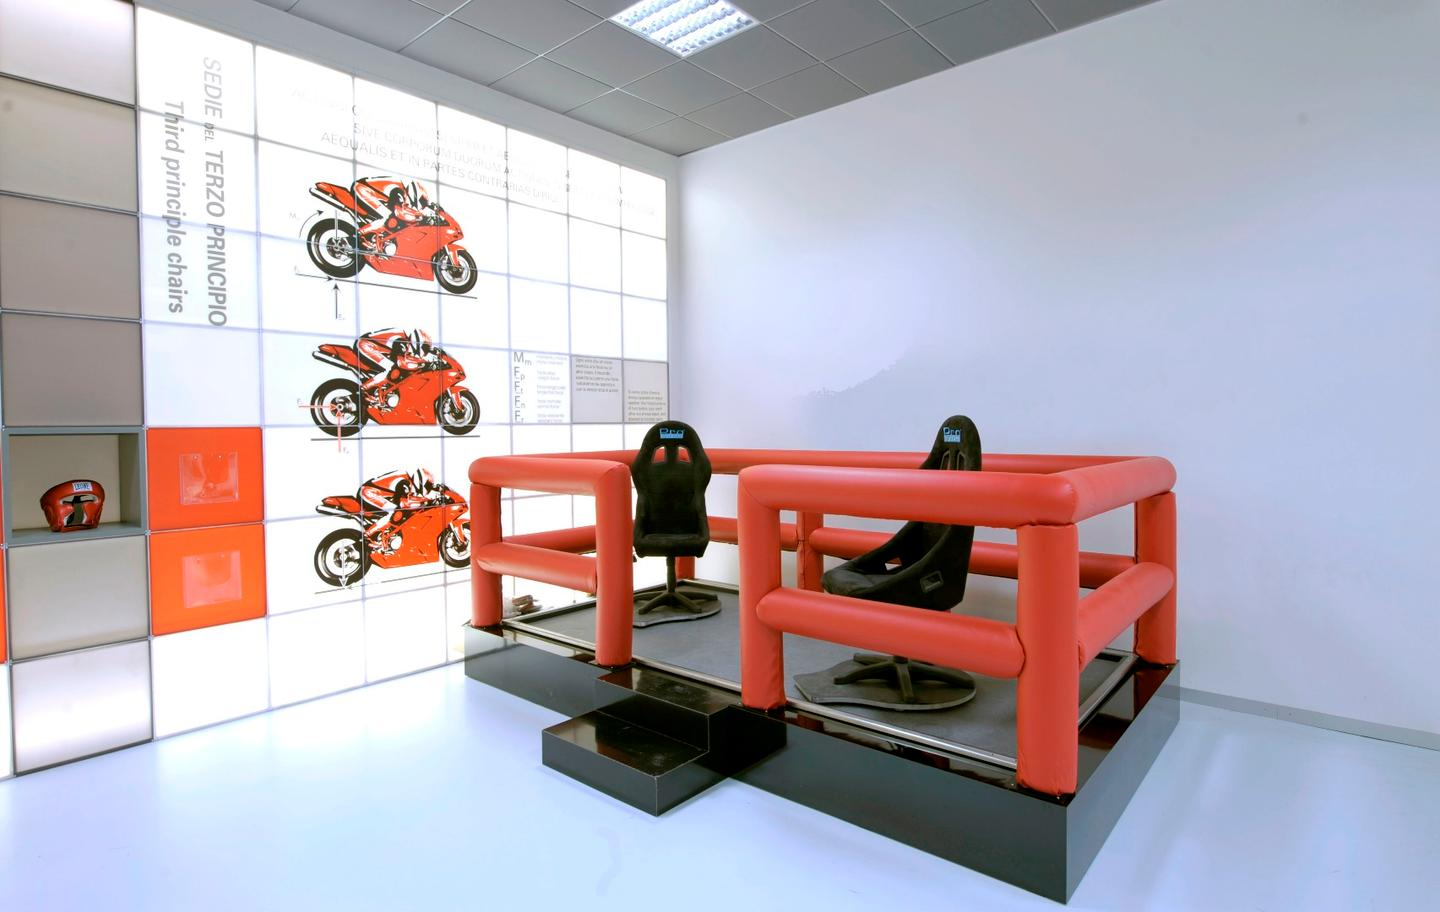 The second room in Ducati's Fisika in Moto laboratory contains an experimentwhere two chairs on a very low friction surface illustrate Newton's third law, that says thatfor every actionthere is an equal and opposite reaction